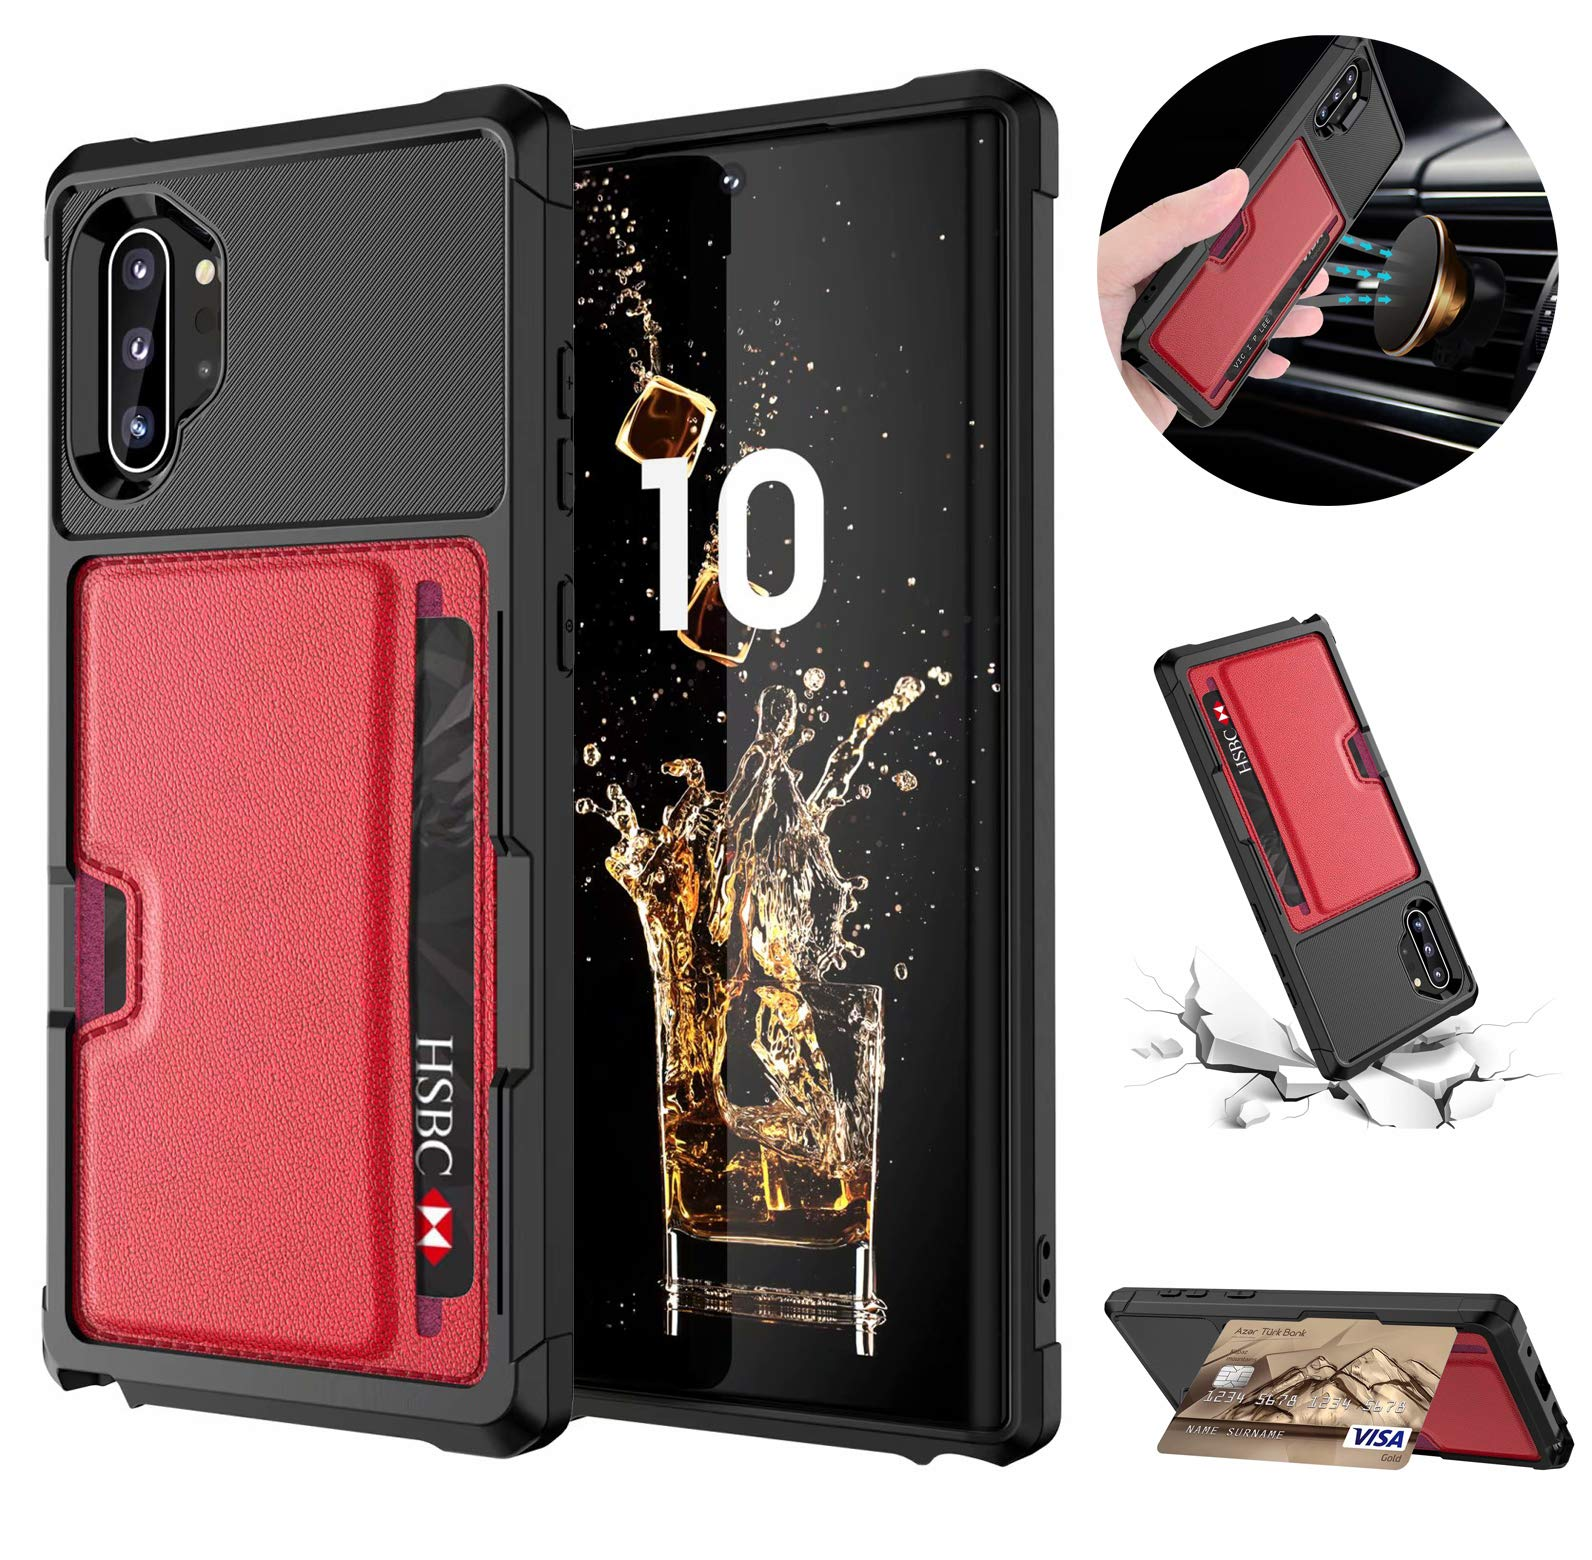 Tznzxm Galaxy Note 10 Plus/Note 10 Plus Case,Slim Non Slip Credit Card Kickstand Rubber [Work with Magnetic Car Mount] Durable Flip Shockproof Protective Cover for Samsung Galaxy Note 10 Plus Red by Tznzxm